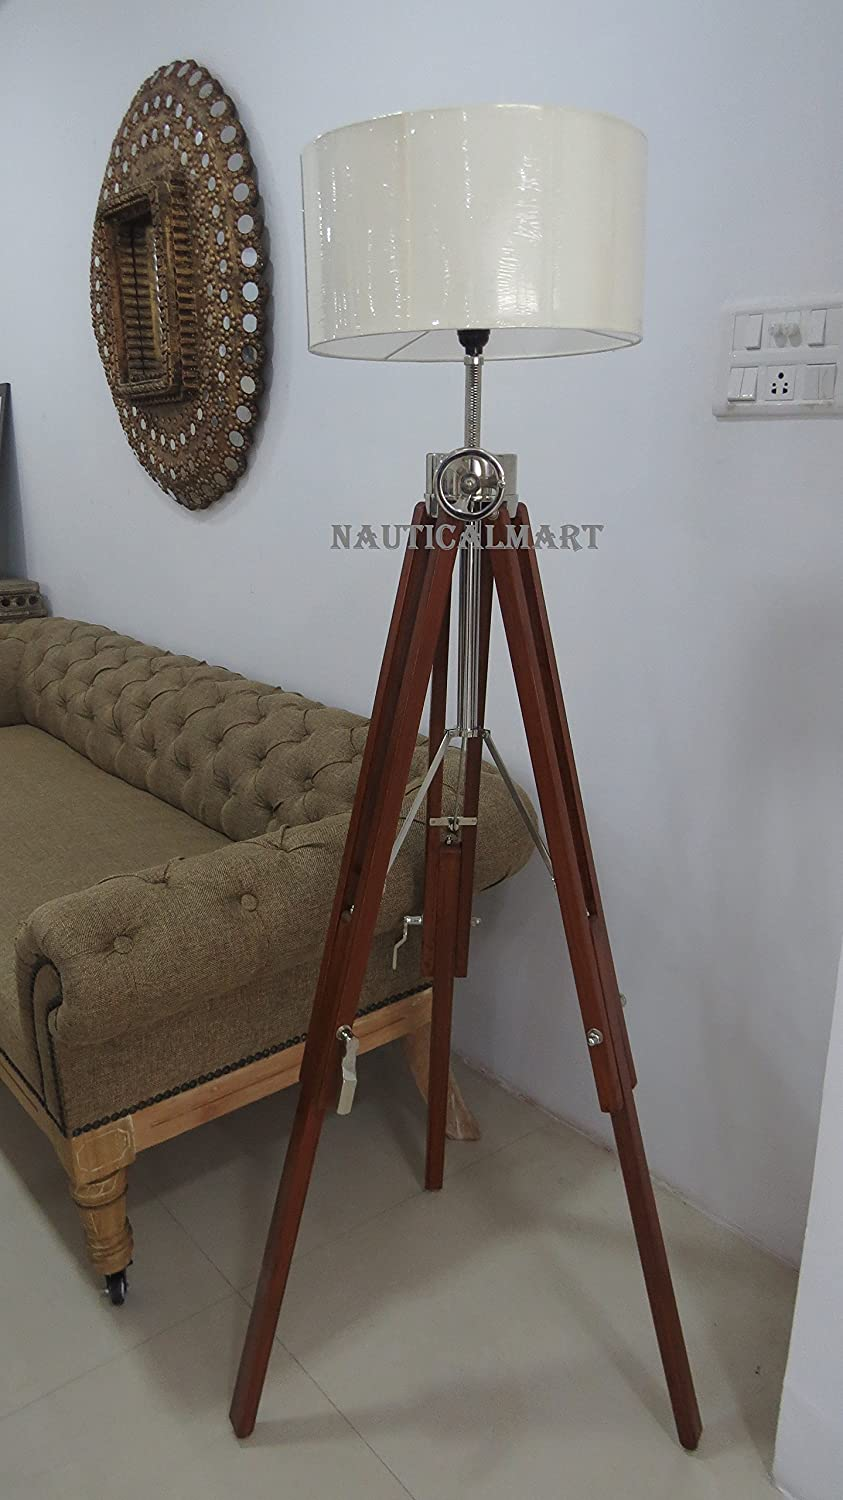 Classic Vintage Tripod Floor Lamp Corner Home Decor Lamp By Nauticalmart